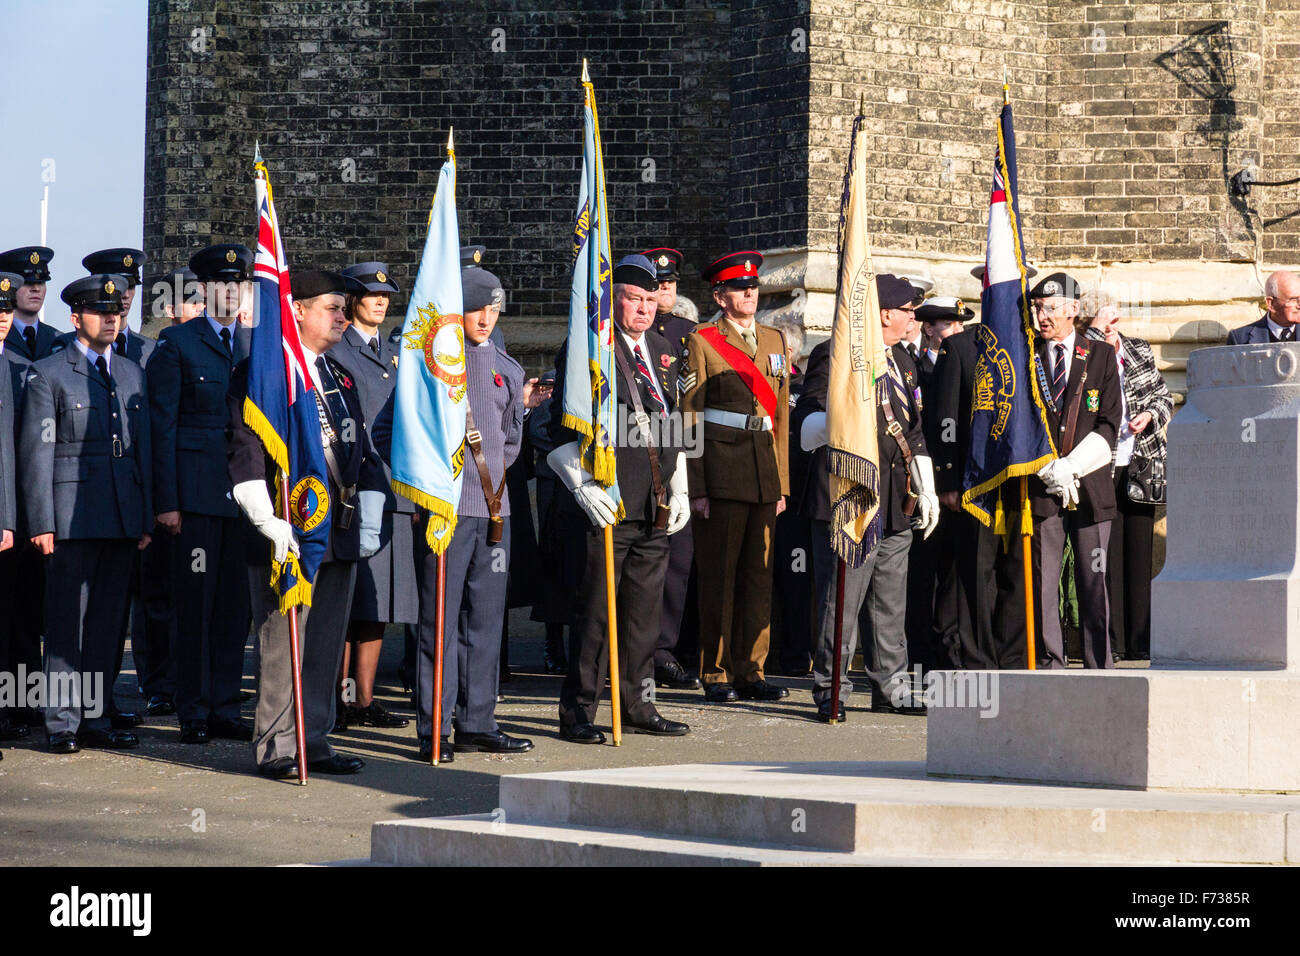 England, Ramsgate. Remembrance Sunday ceremony at war memorial. Old soldiers standing at attention with flags outside - Stock Image